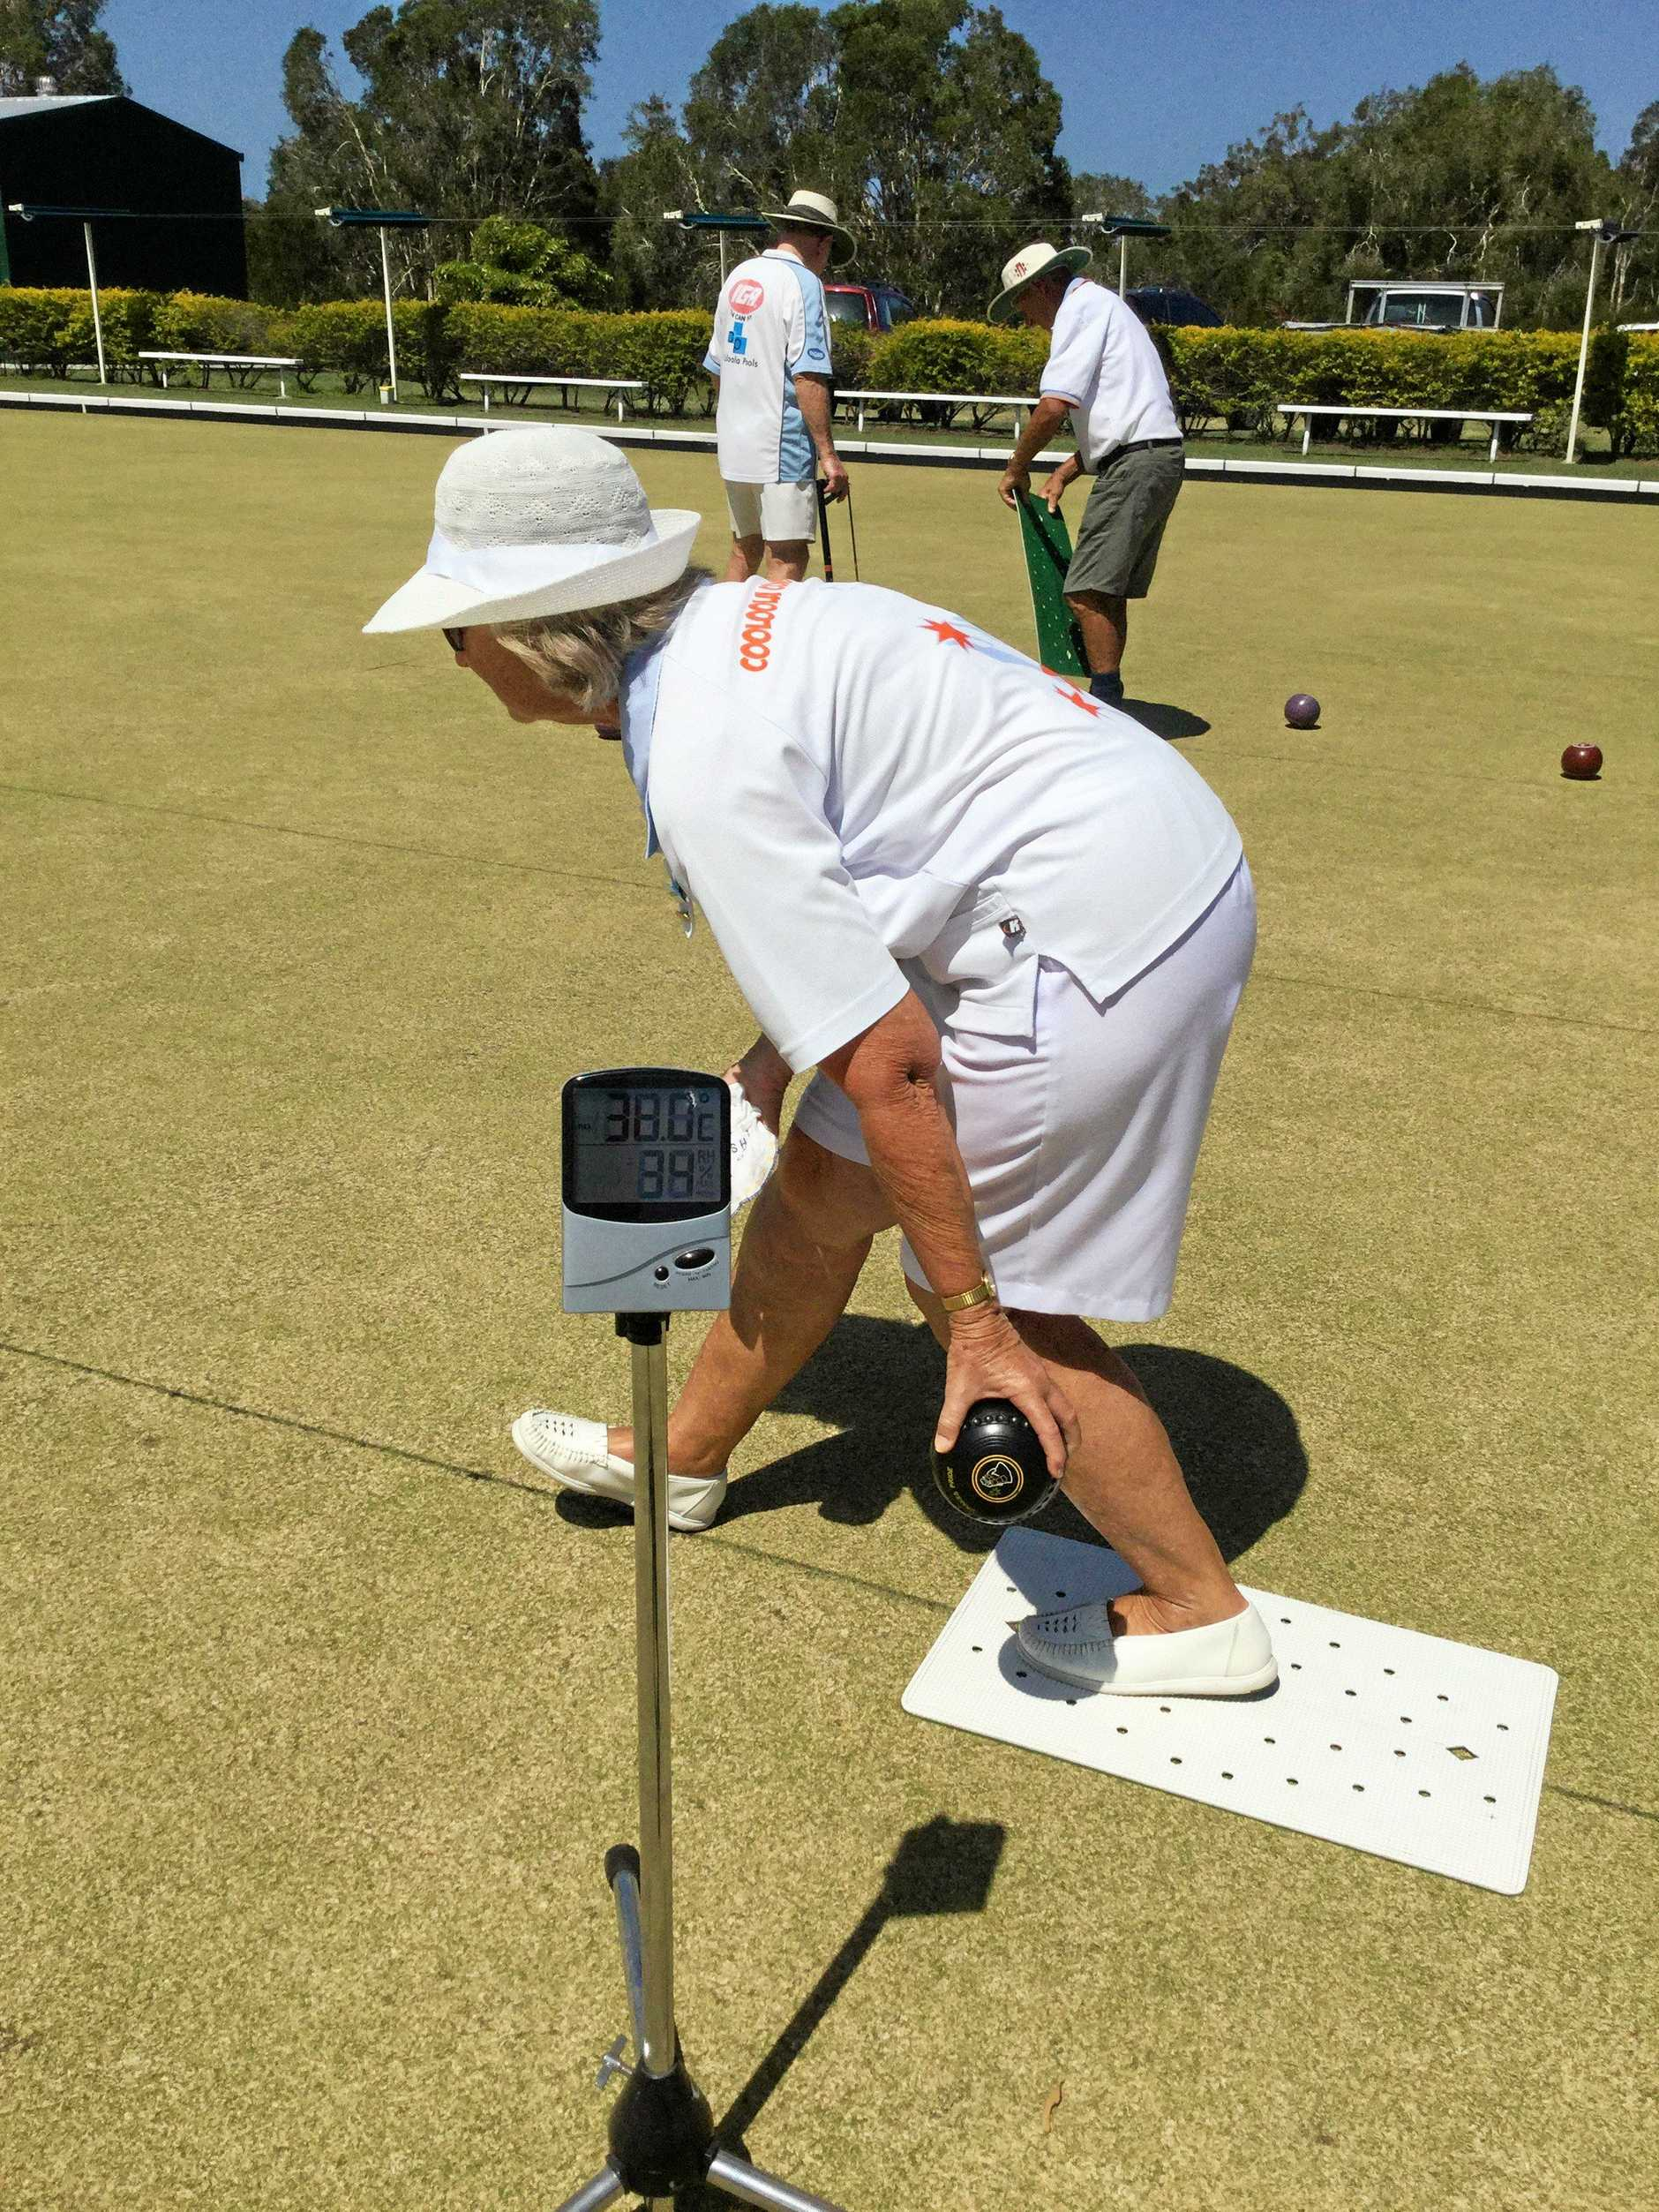 Cooloola Coast's Jean Heidemann was keeping an eye on the temperature gauge when bowling on Sunday.